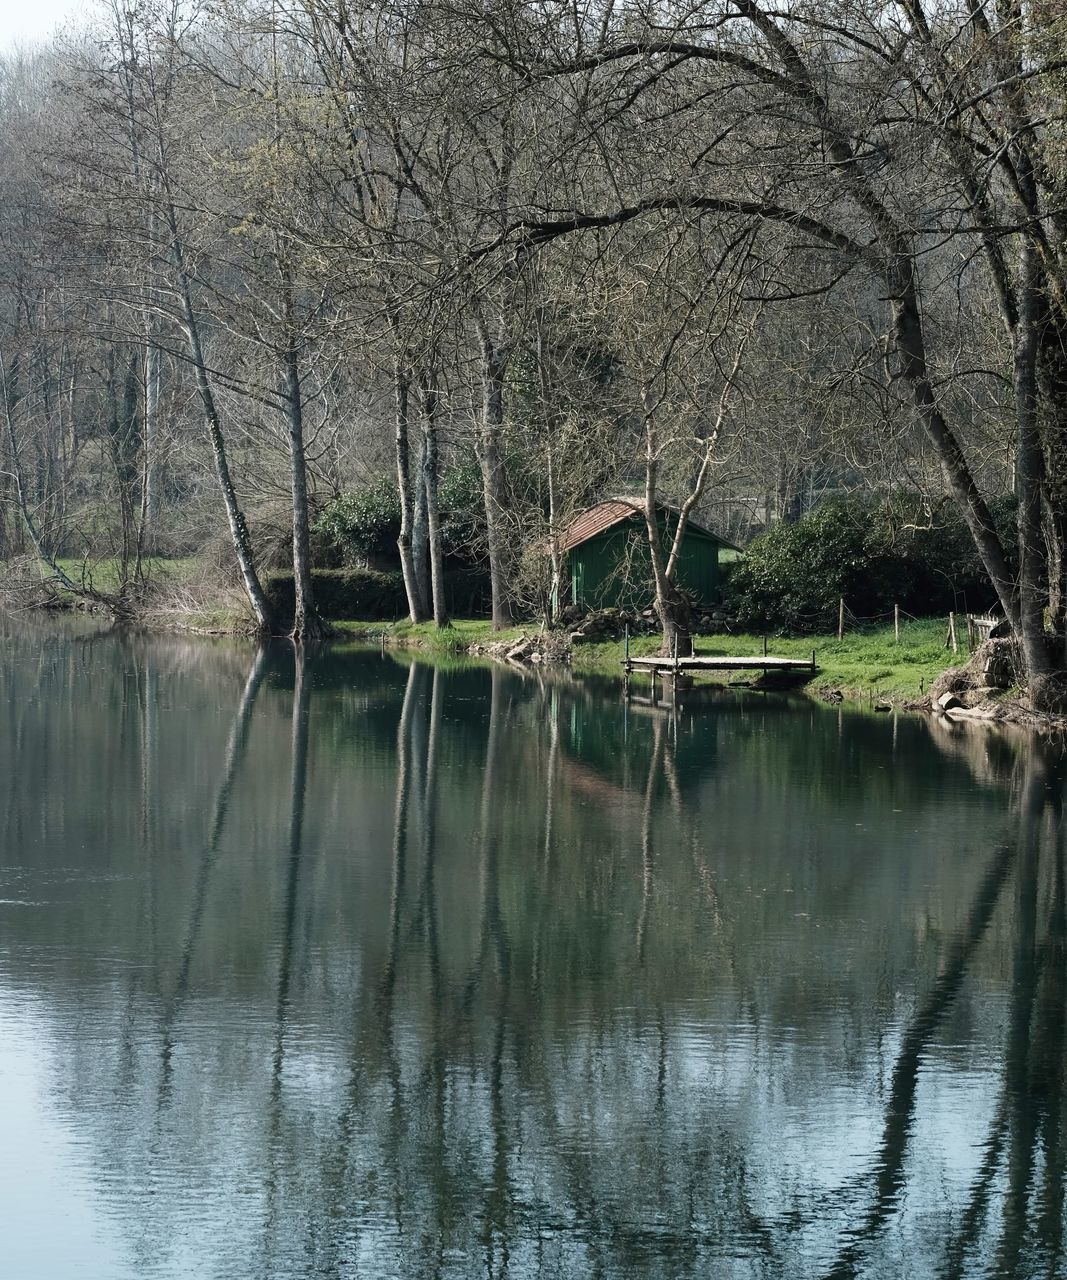 SCENIC VIEW OF LAKE WITH REFLECTION